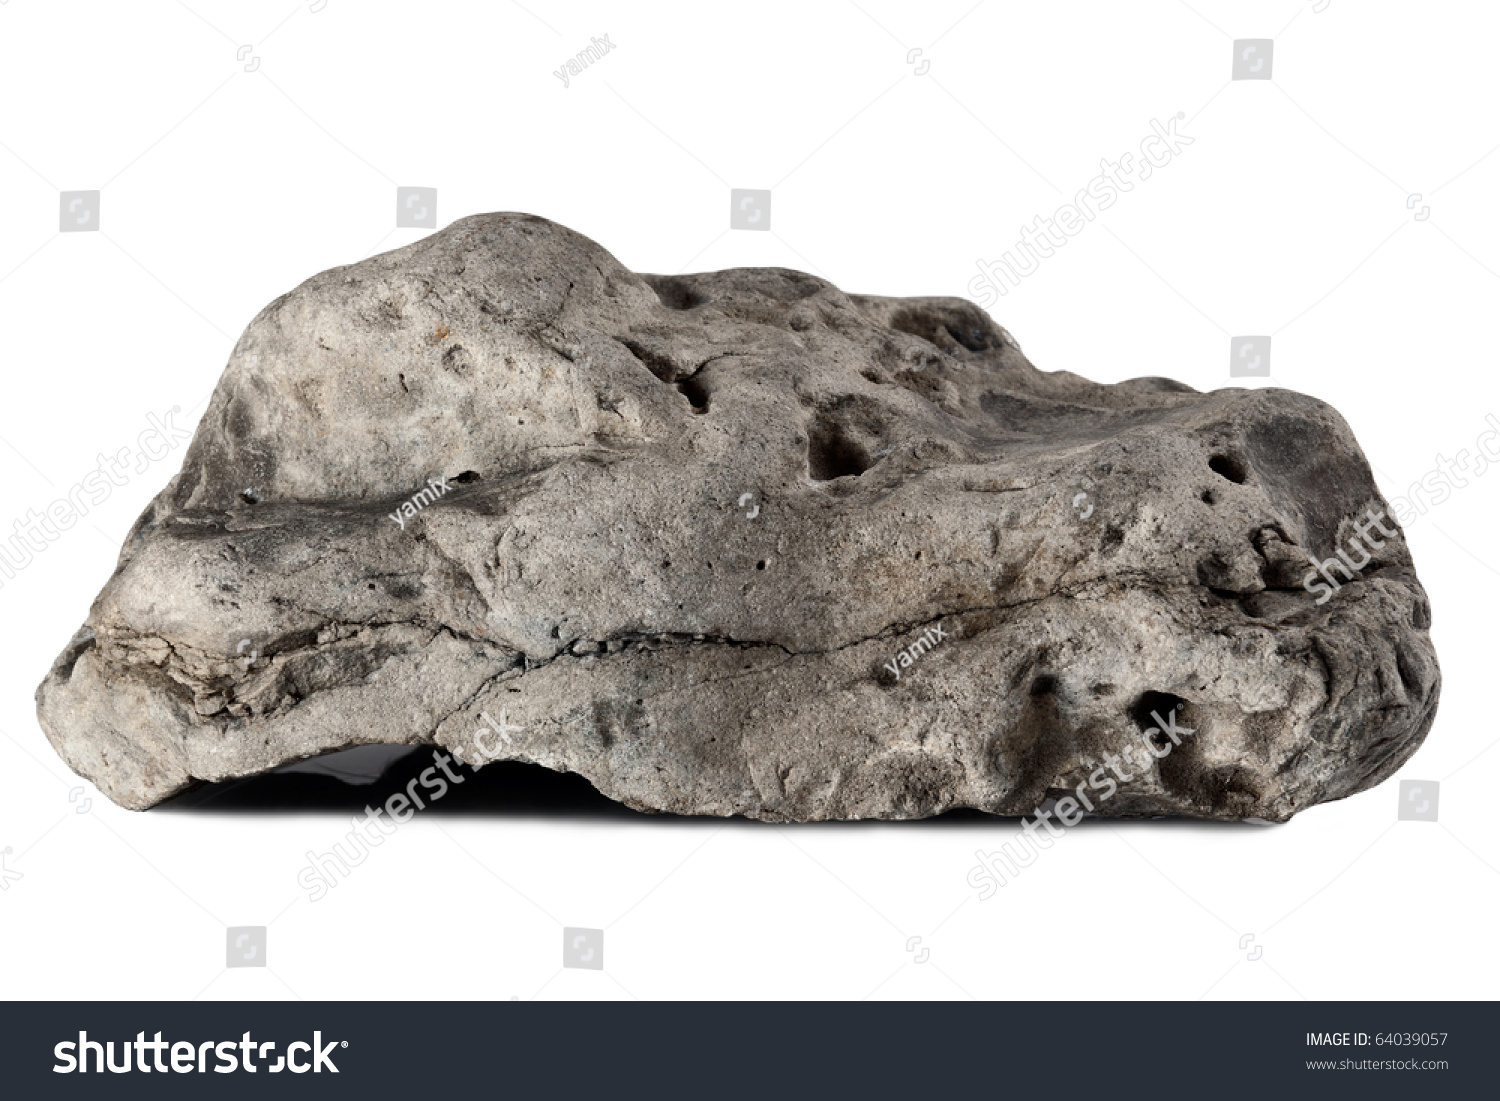 Big rock isolated on a white background stock photo for Large white garden rocks